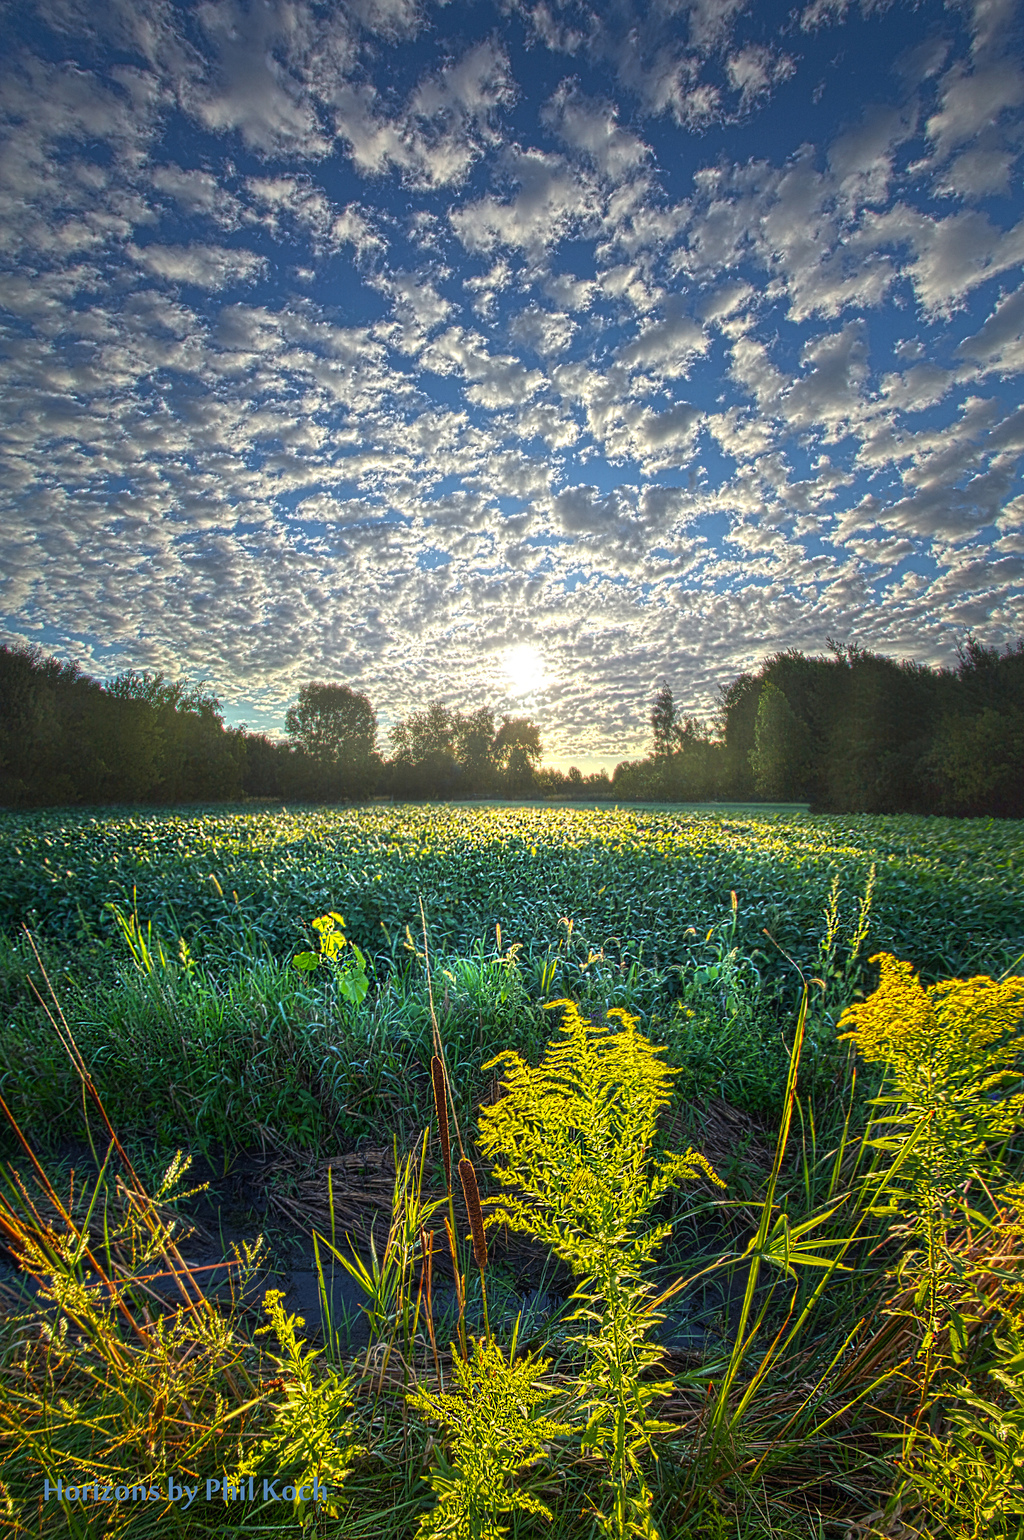 The Here and Now via Phil Koch